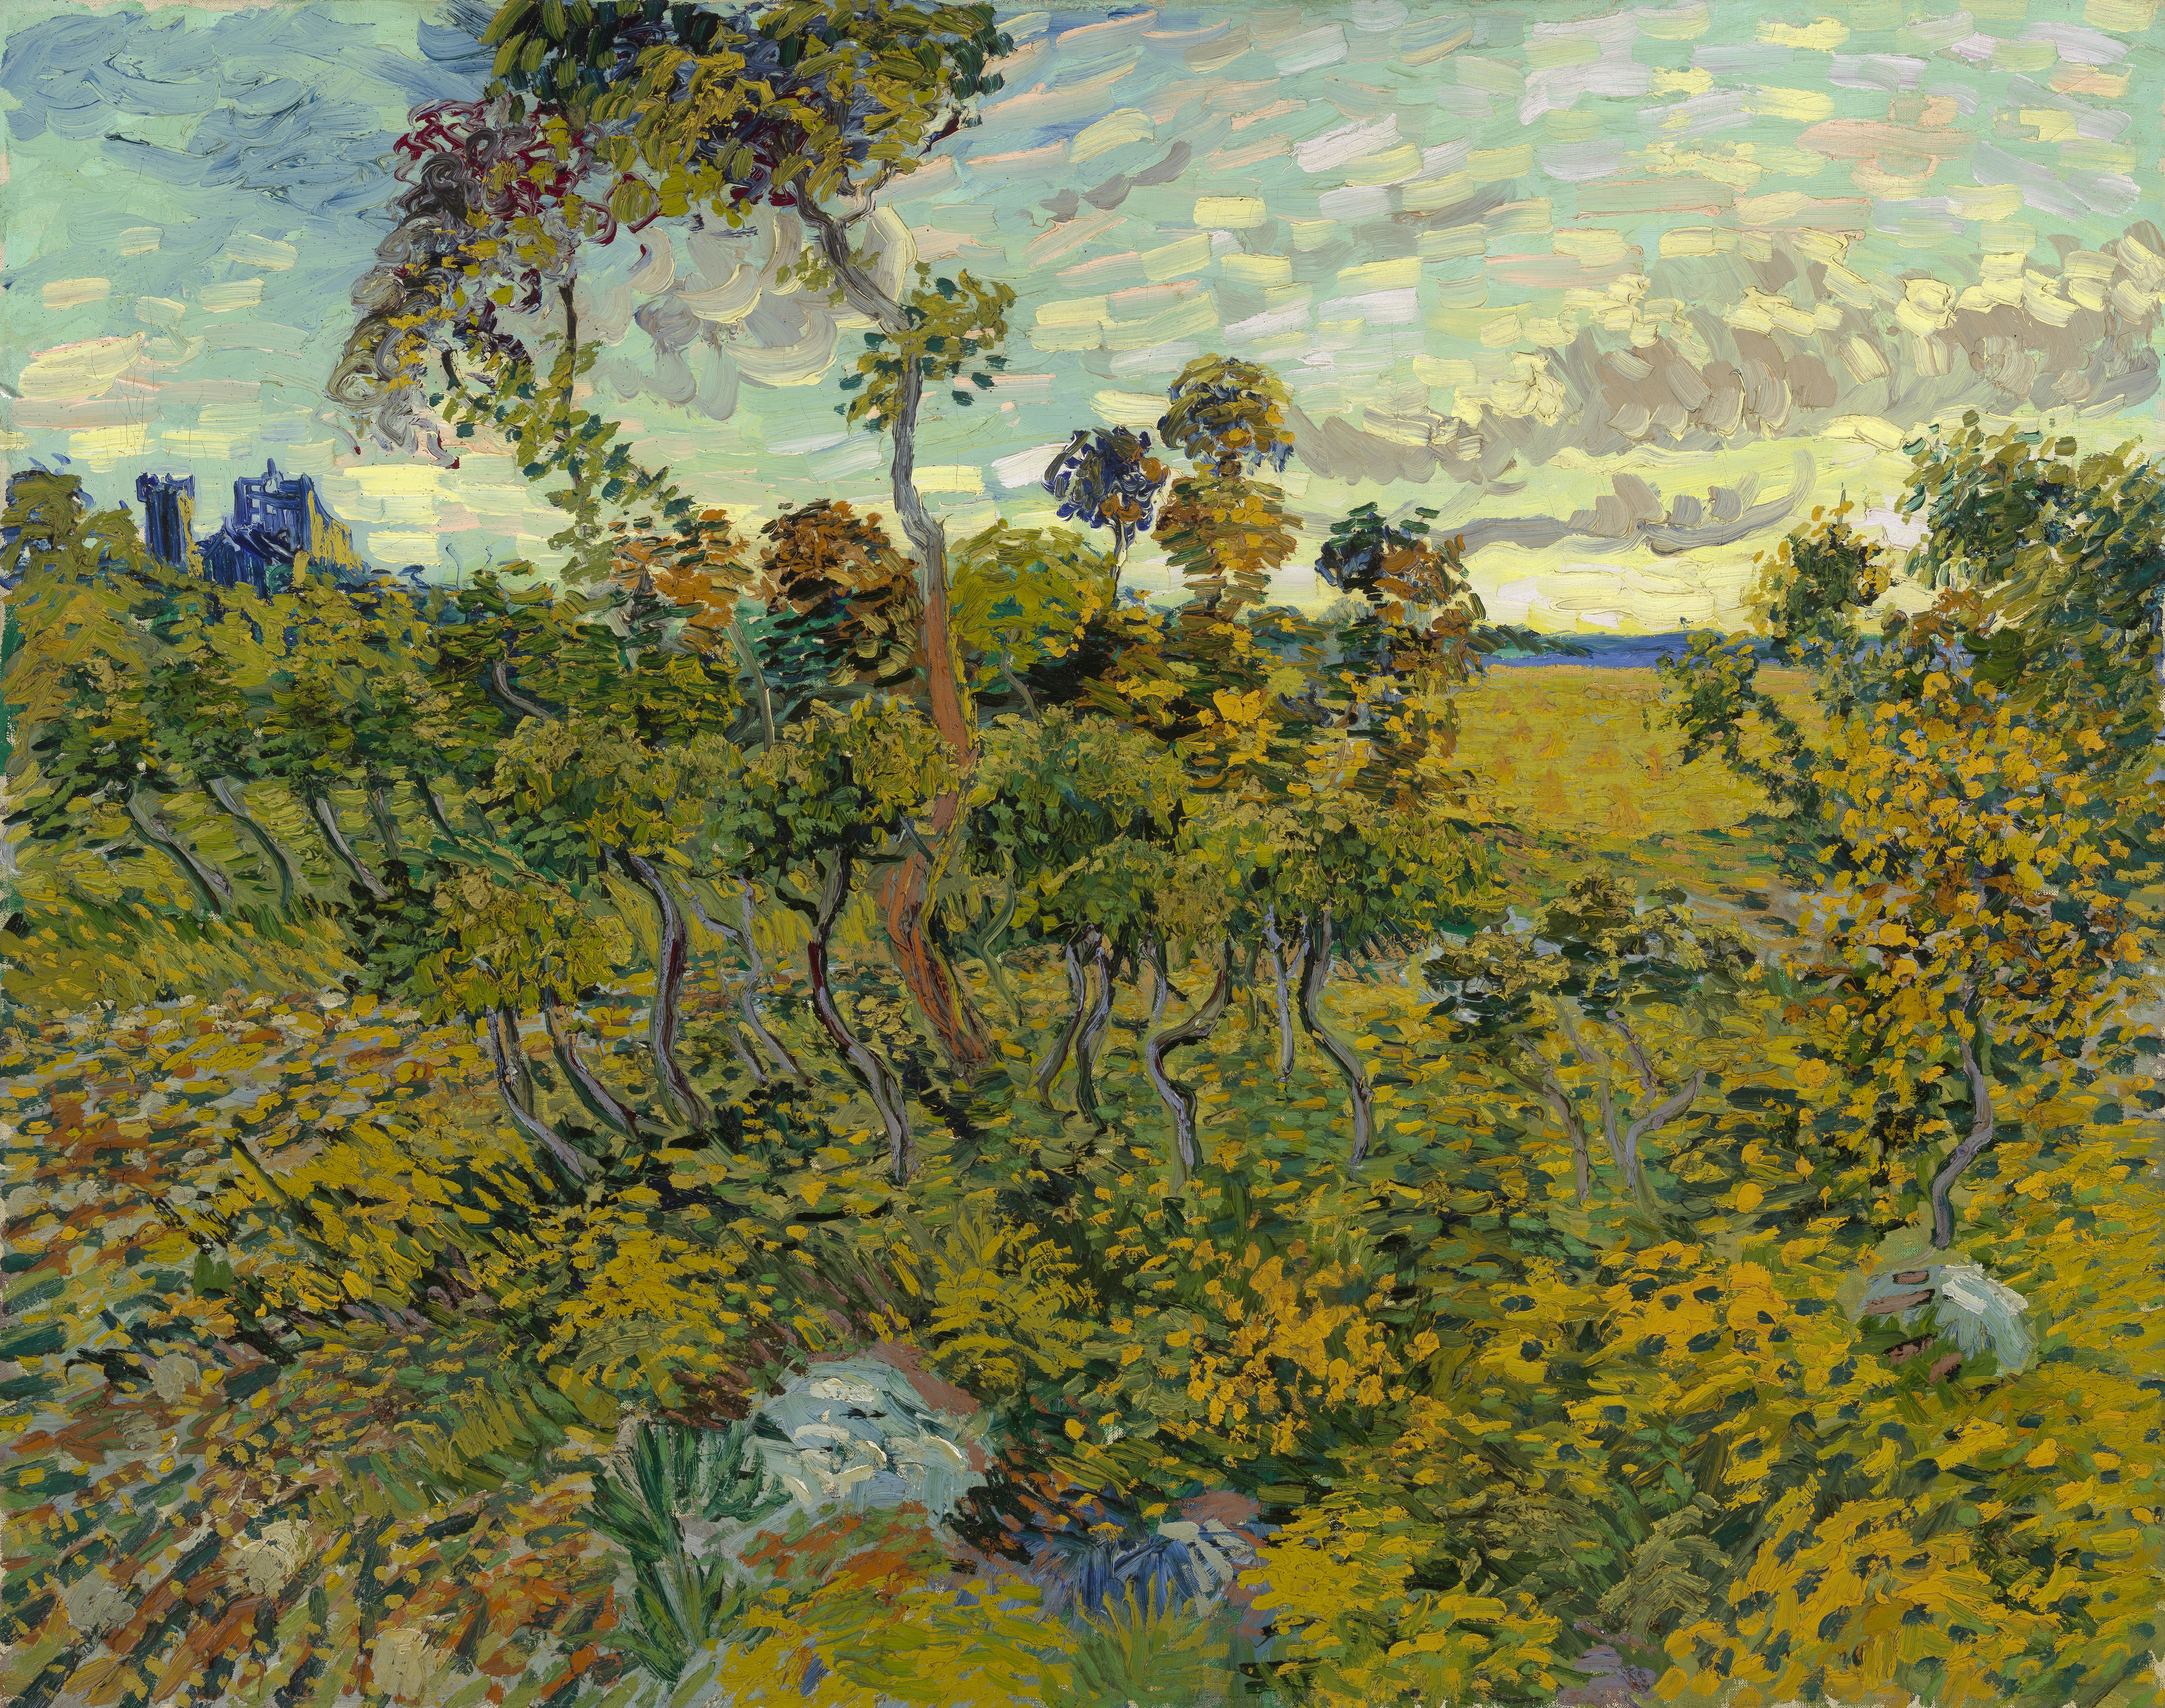 van gough poet garden vs monet The poet's garden oil painting by vincent van gogh, the highest quality oil painting reproductions and great customer service.